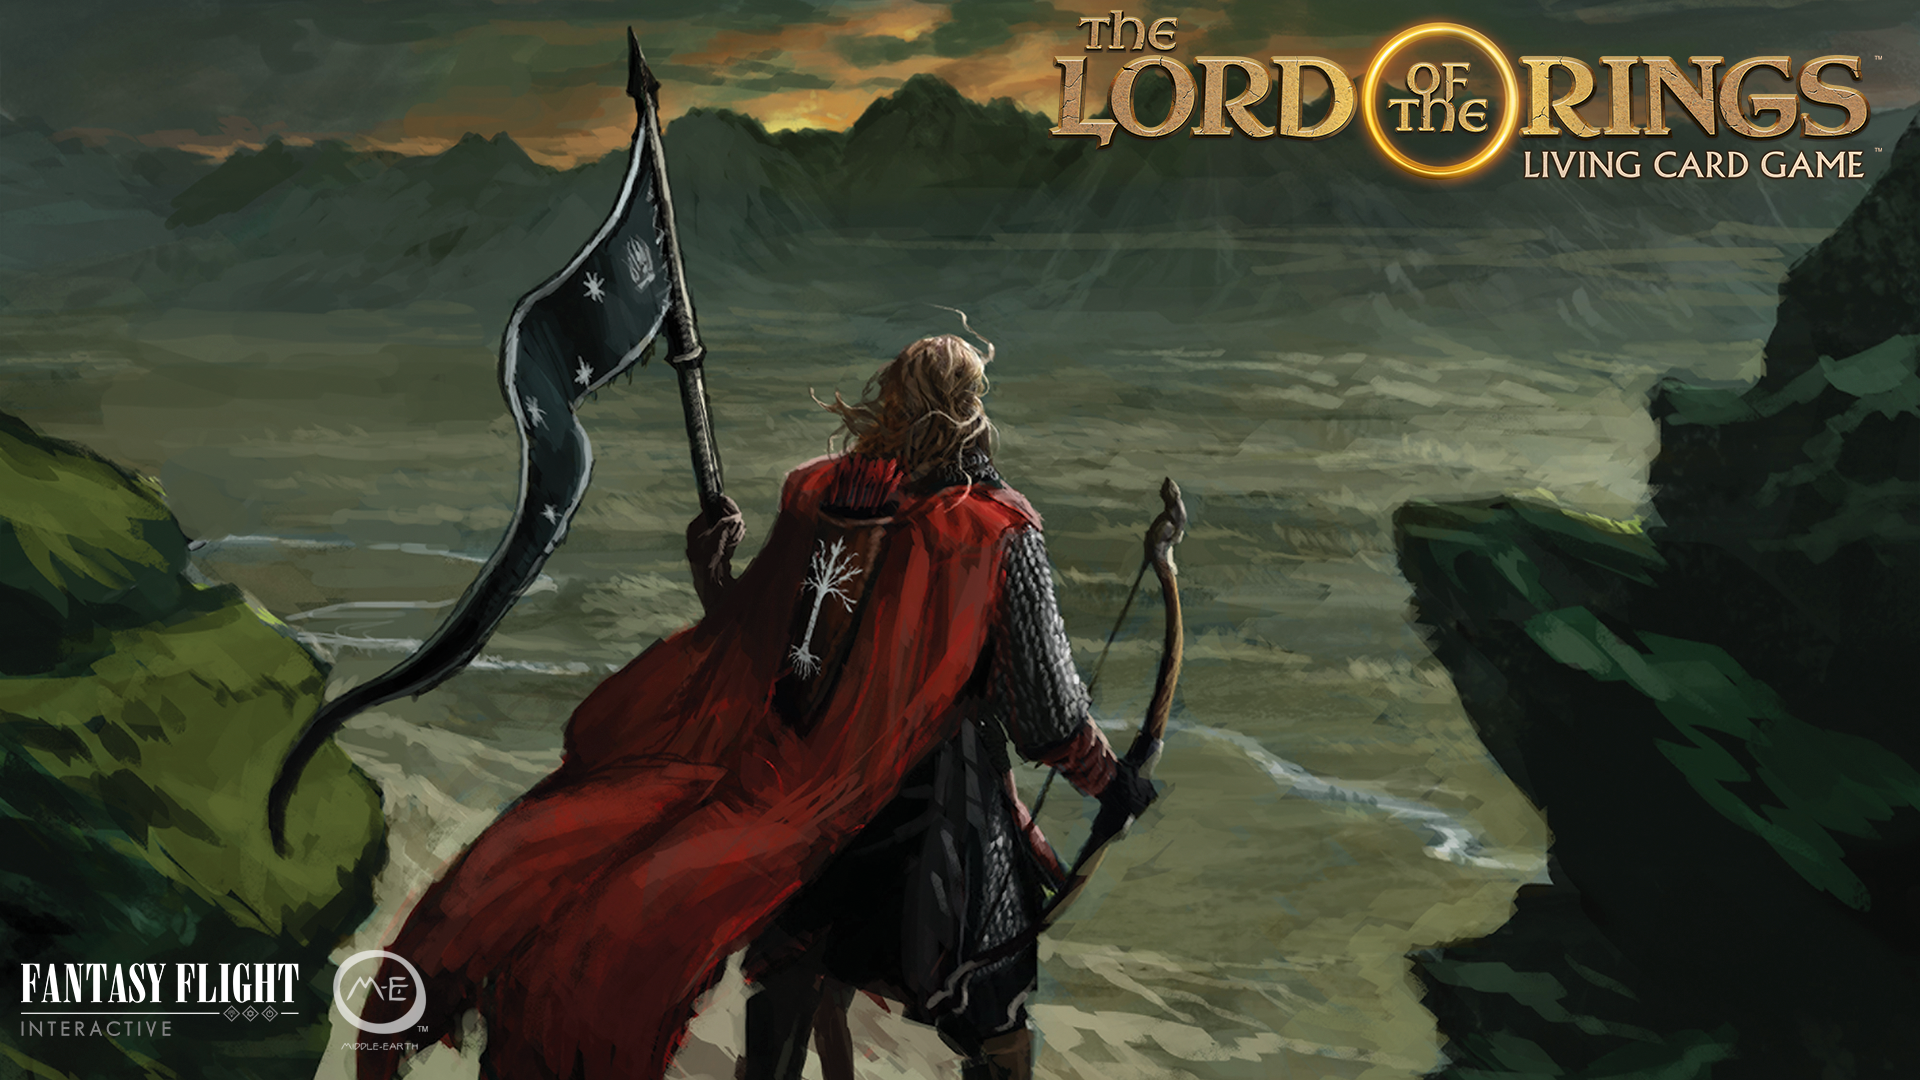 The Lord of the Rings Living Card Game :: An Update on The Economy of The Lord of the Rings: Living Card Game